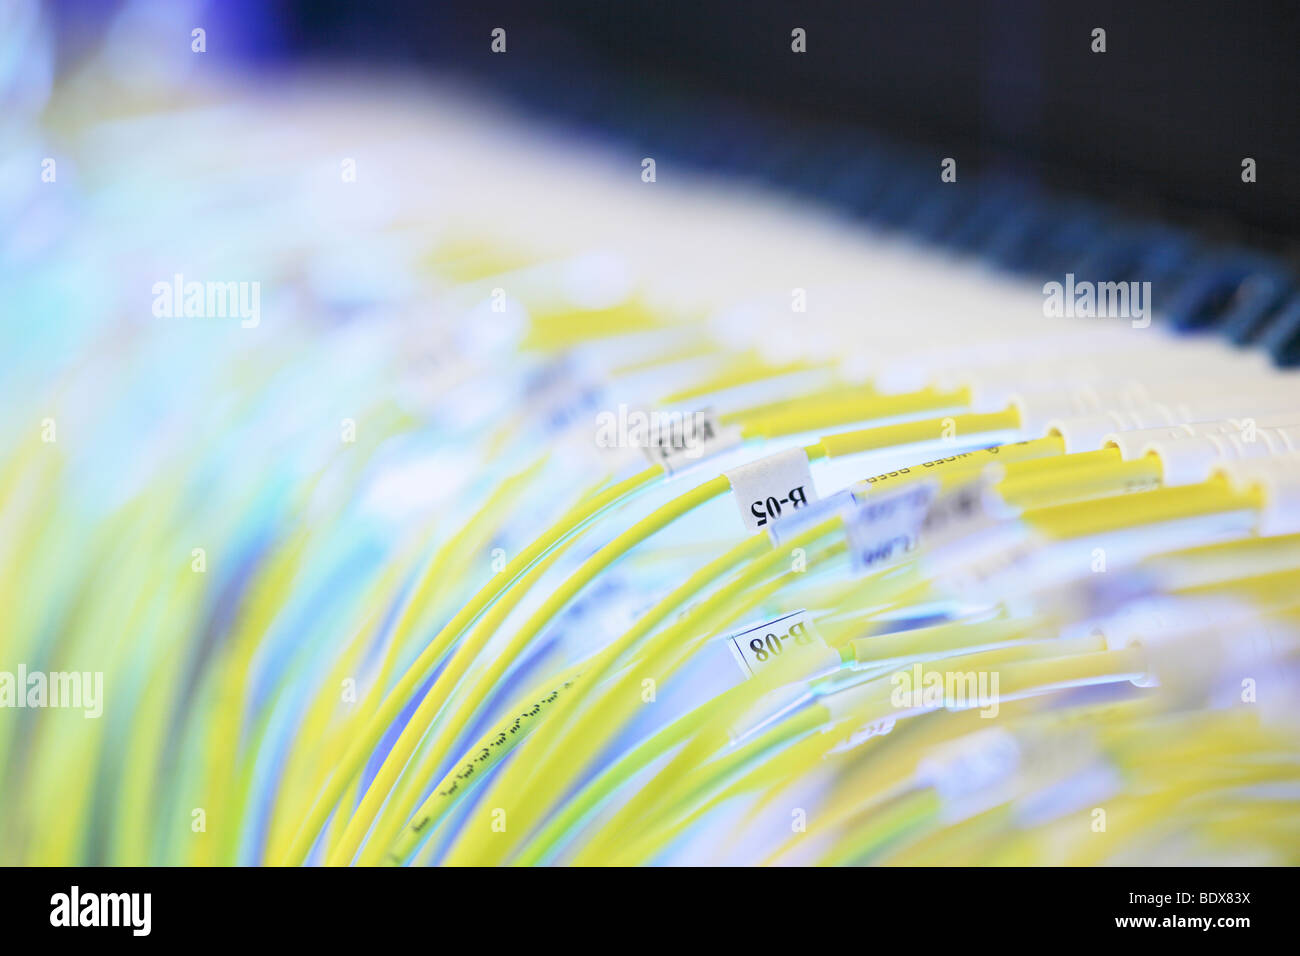 Fiber optics connected - Stock Image